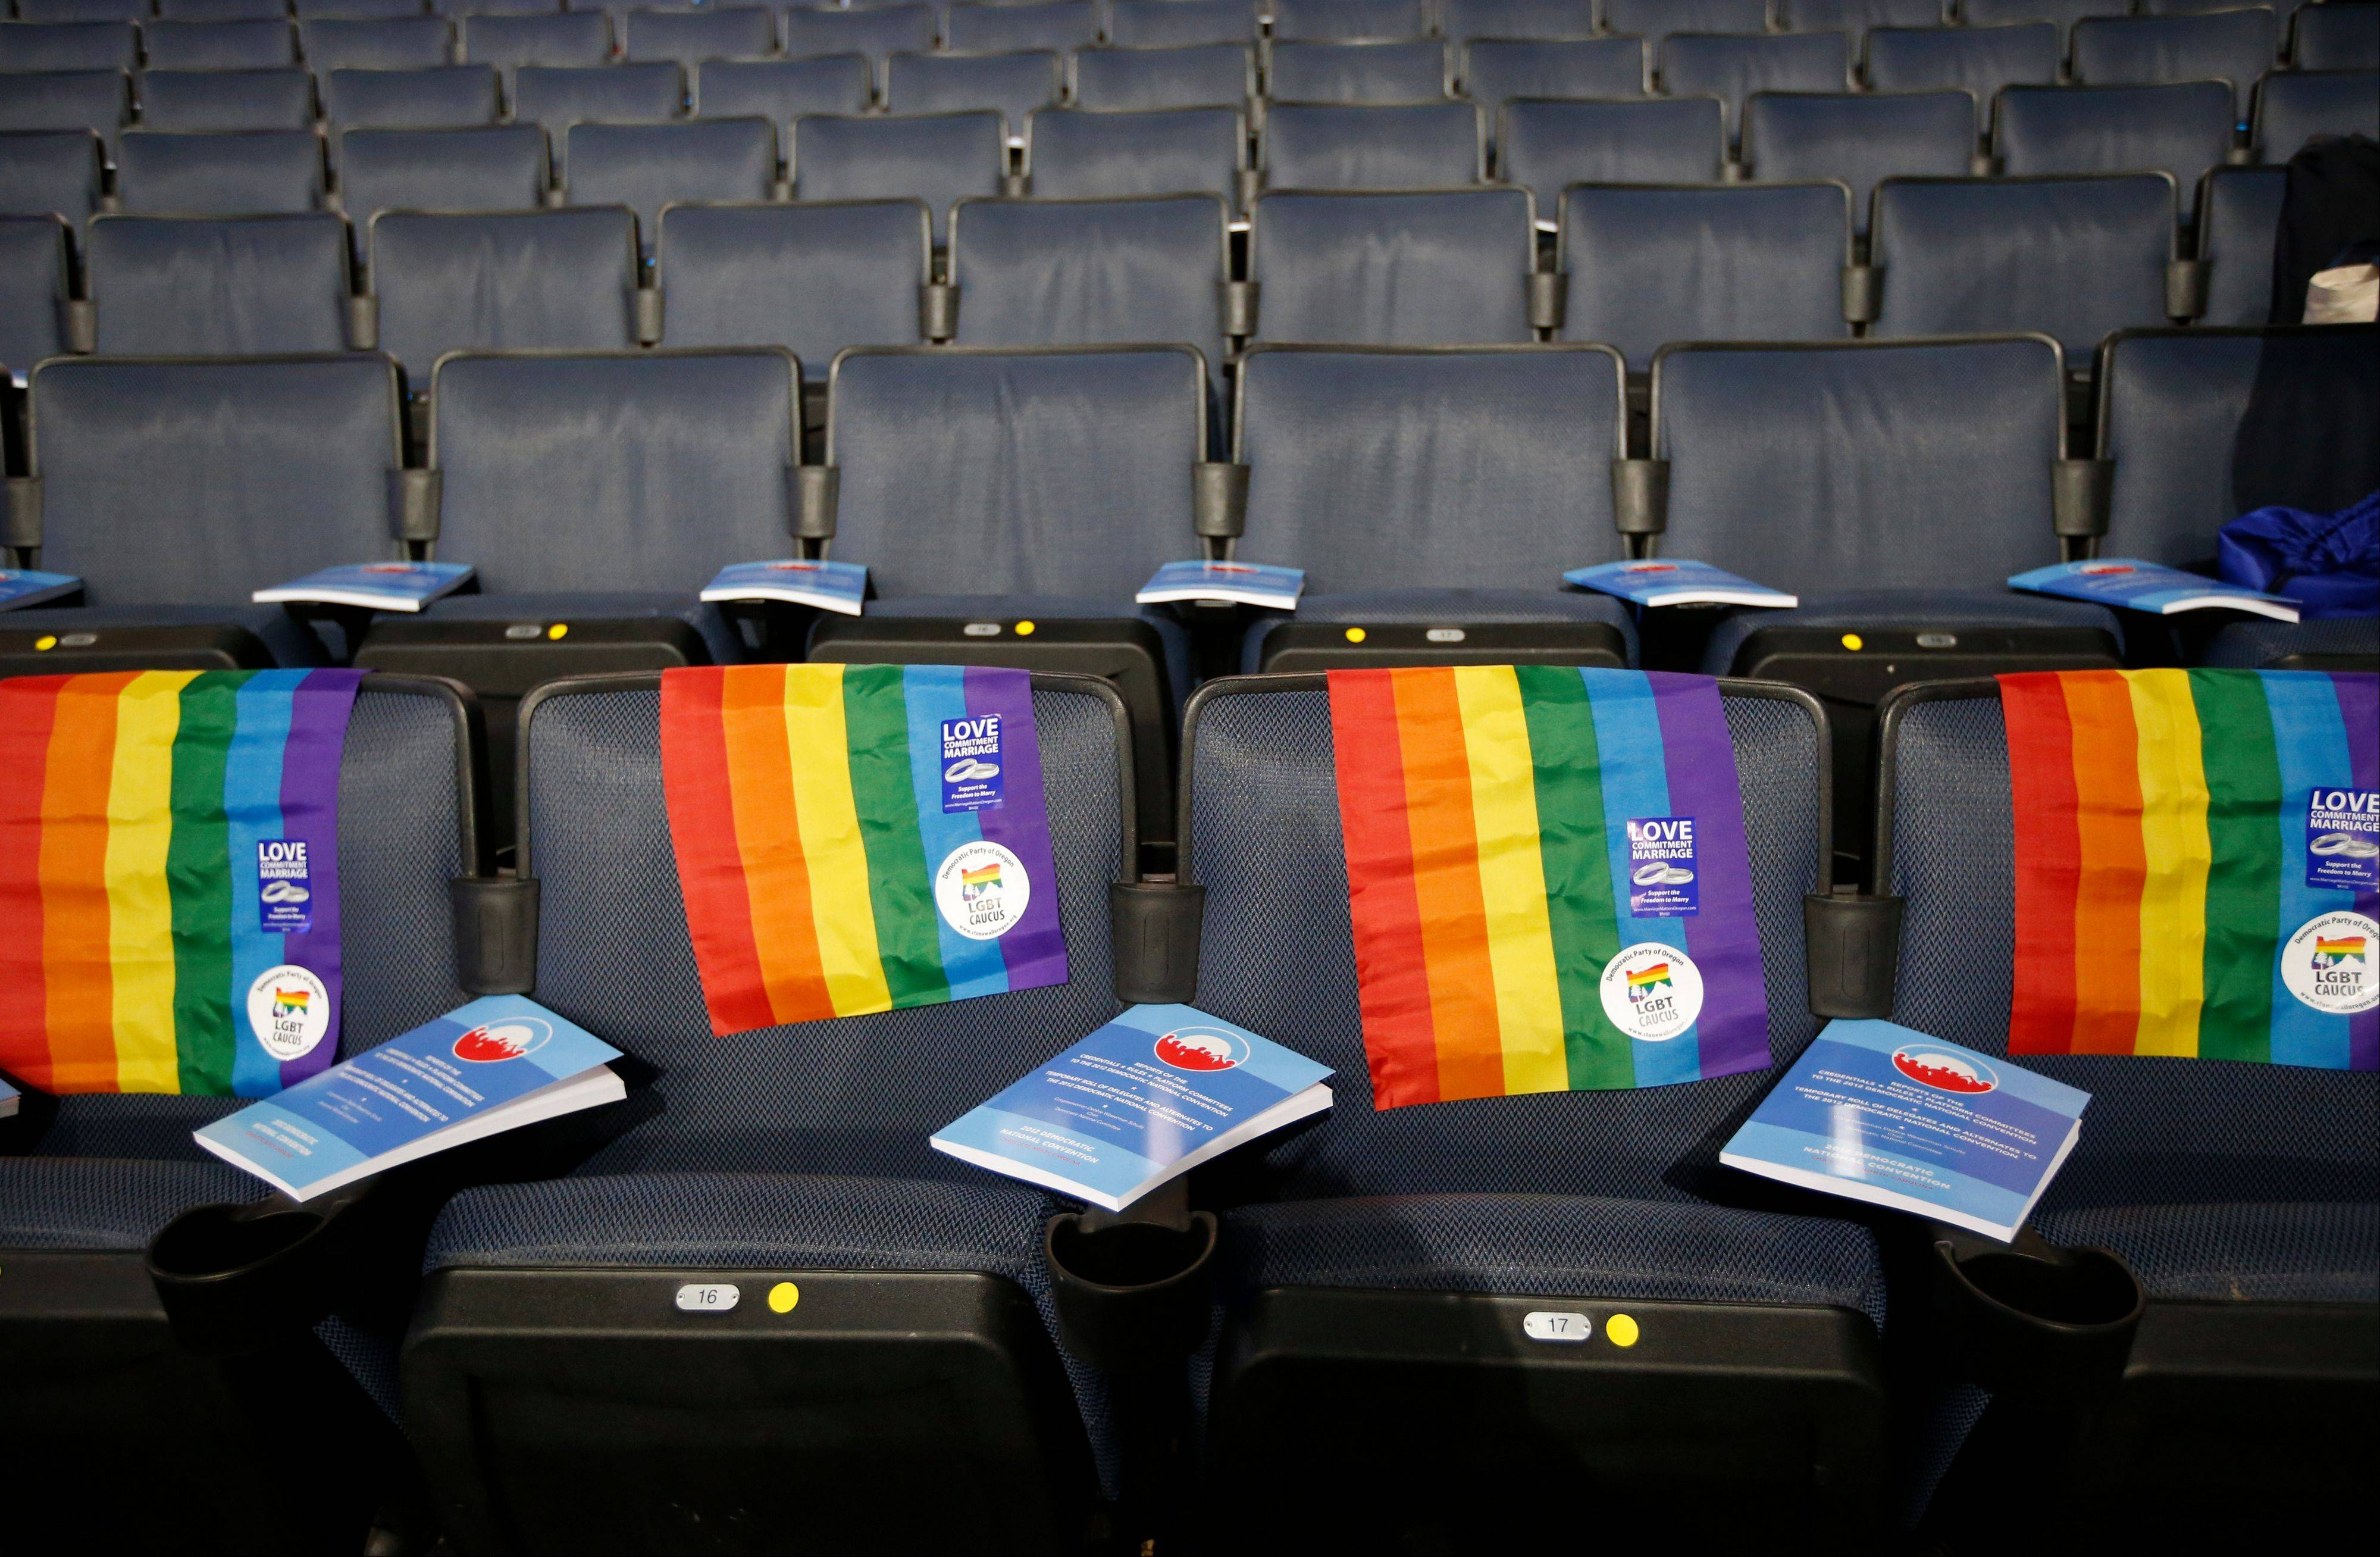 At Democratic convention, record presence for gays